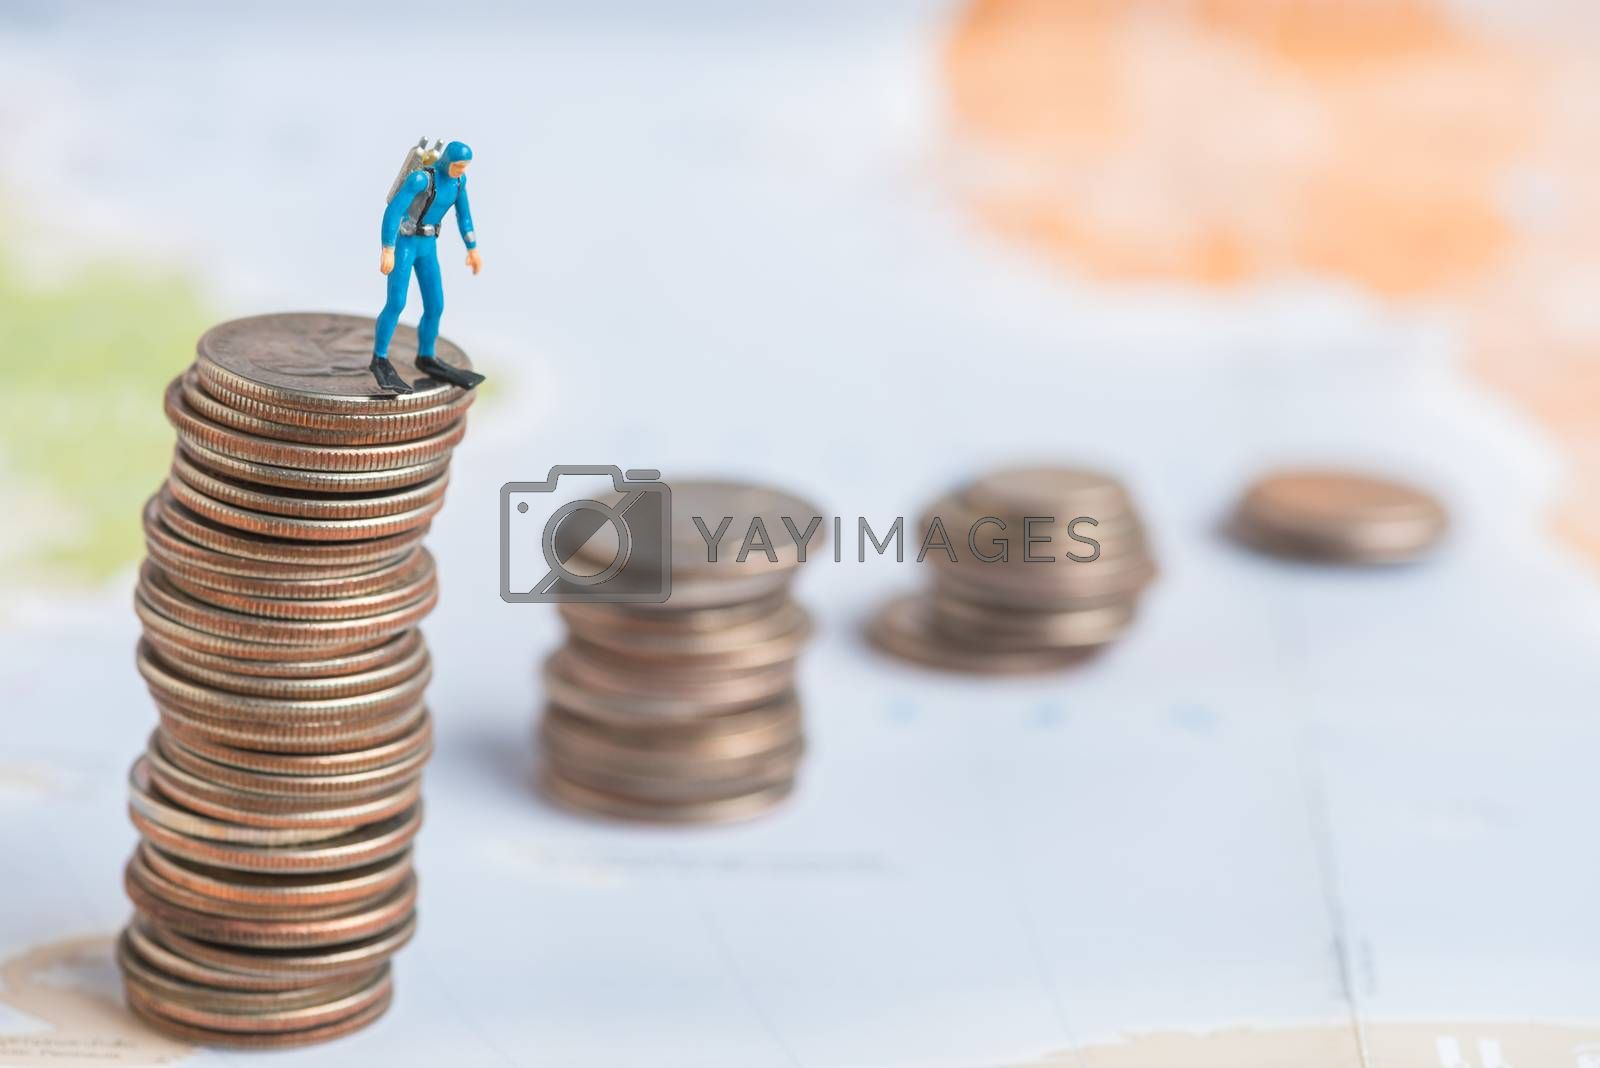 scuba diver miniature man standing on stack of coins with world map background.